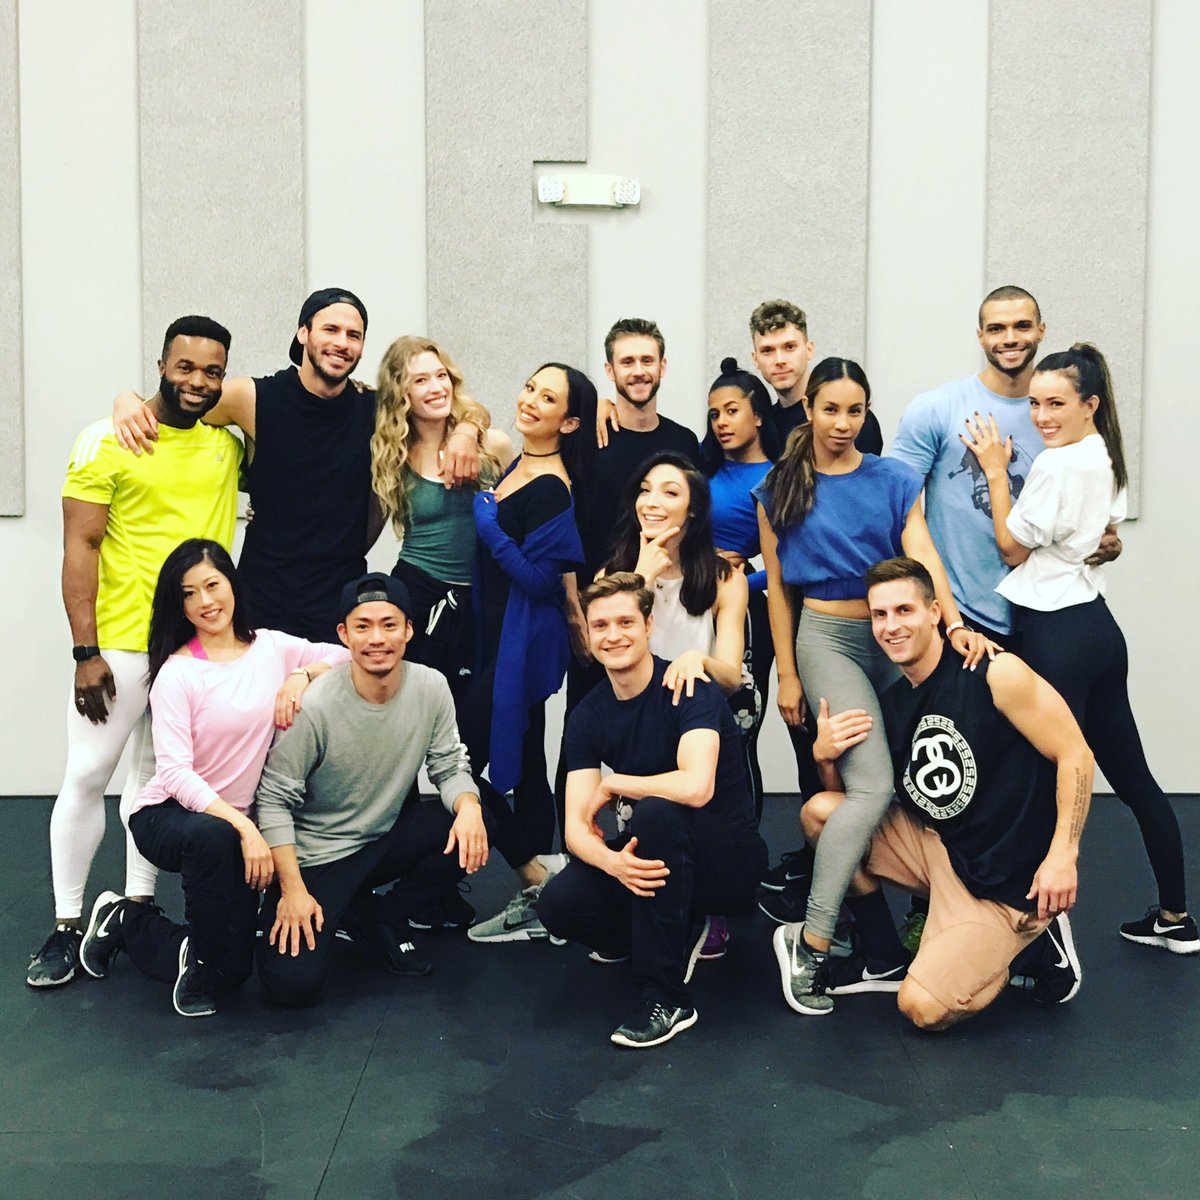 The whole gang is back and ready to take Japan! #loveonthefloor